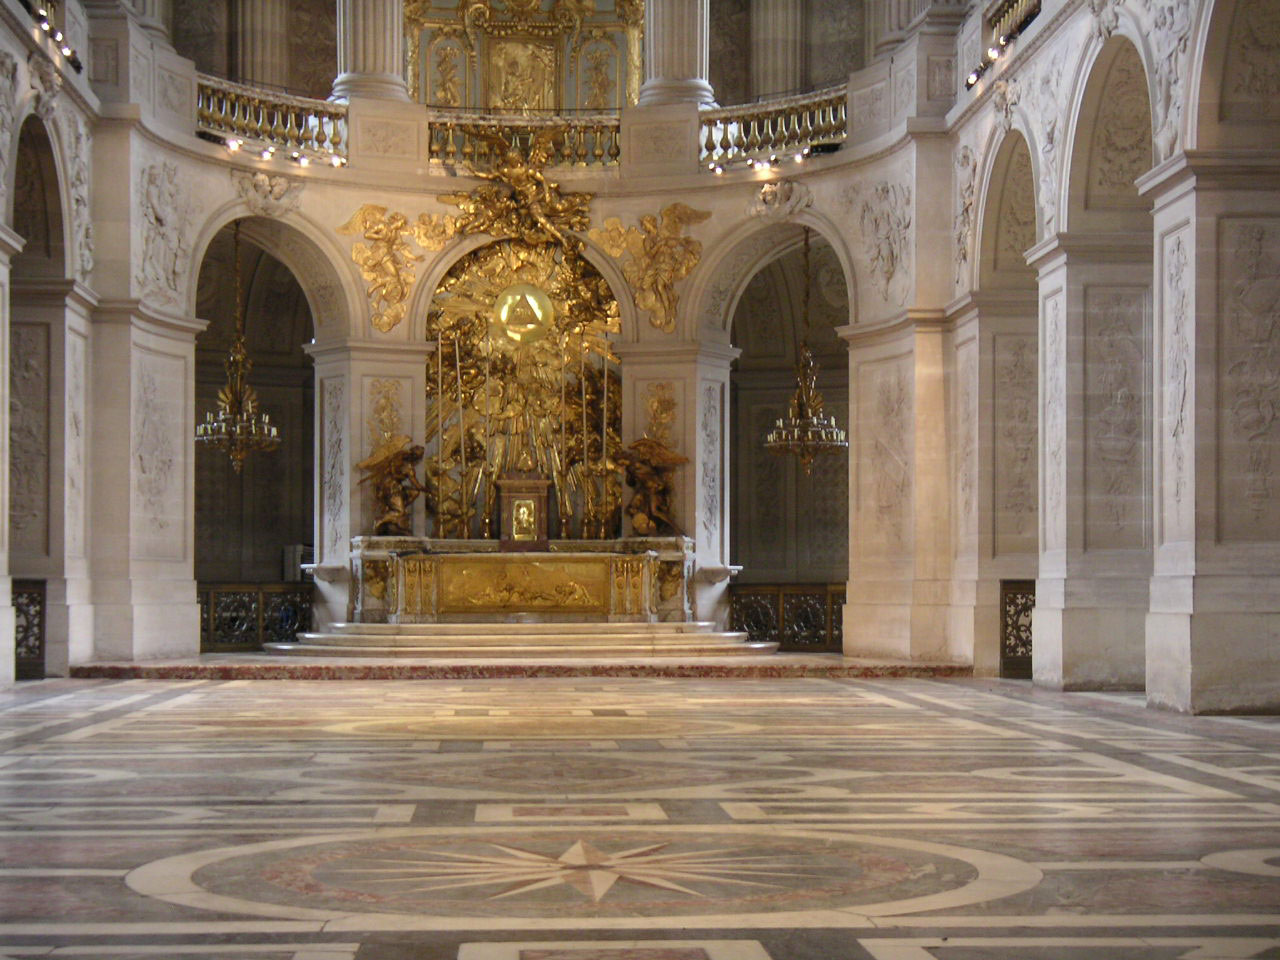 https://upload.wikimedia.org/wikipedia/commons/4/42/Versailles%2C_Chapelle_royale.jpg